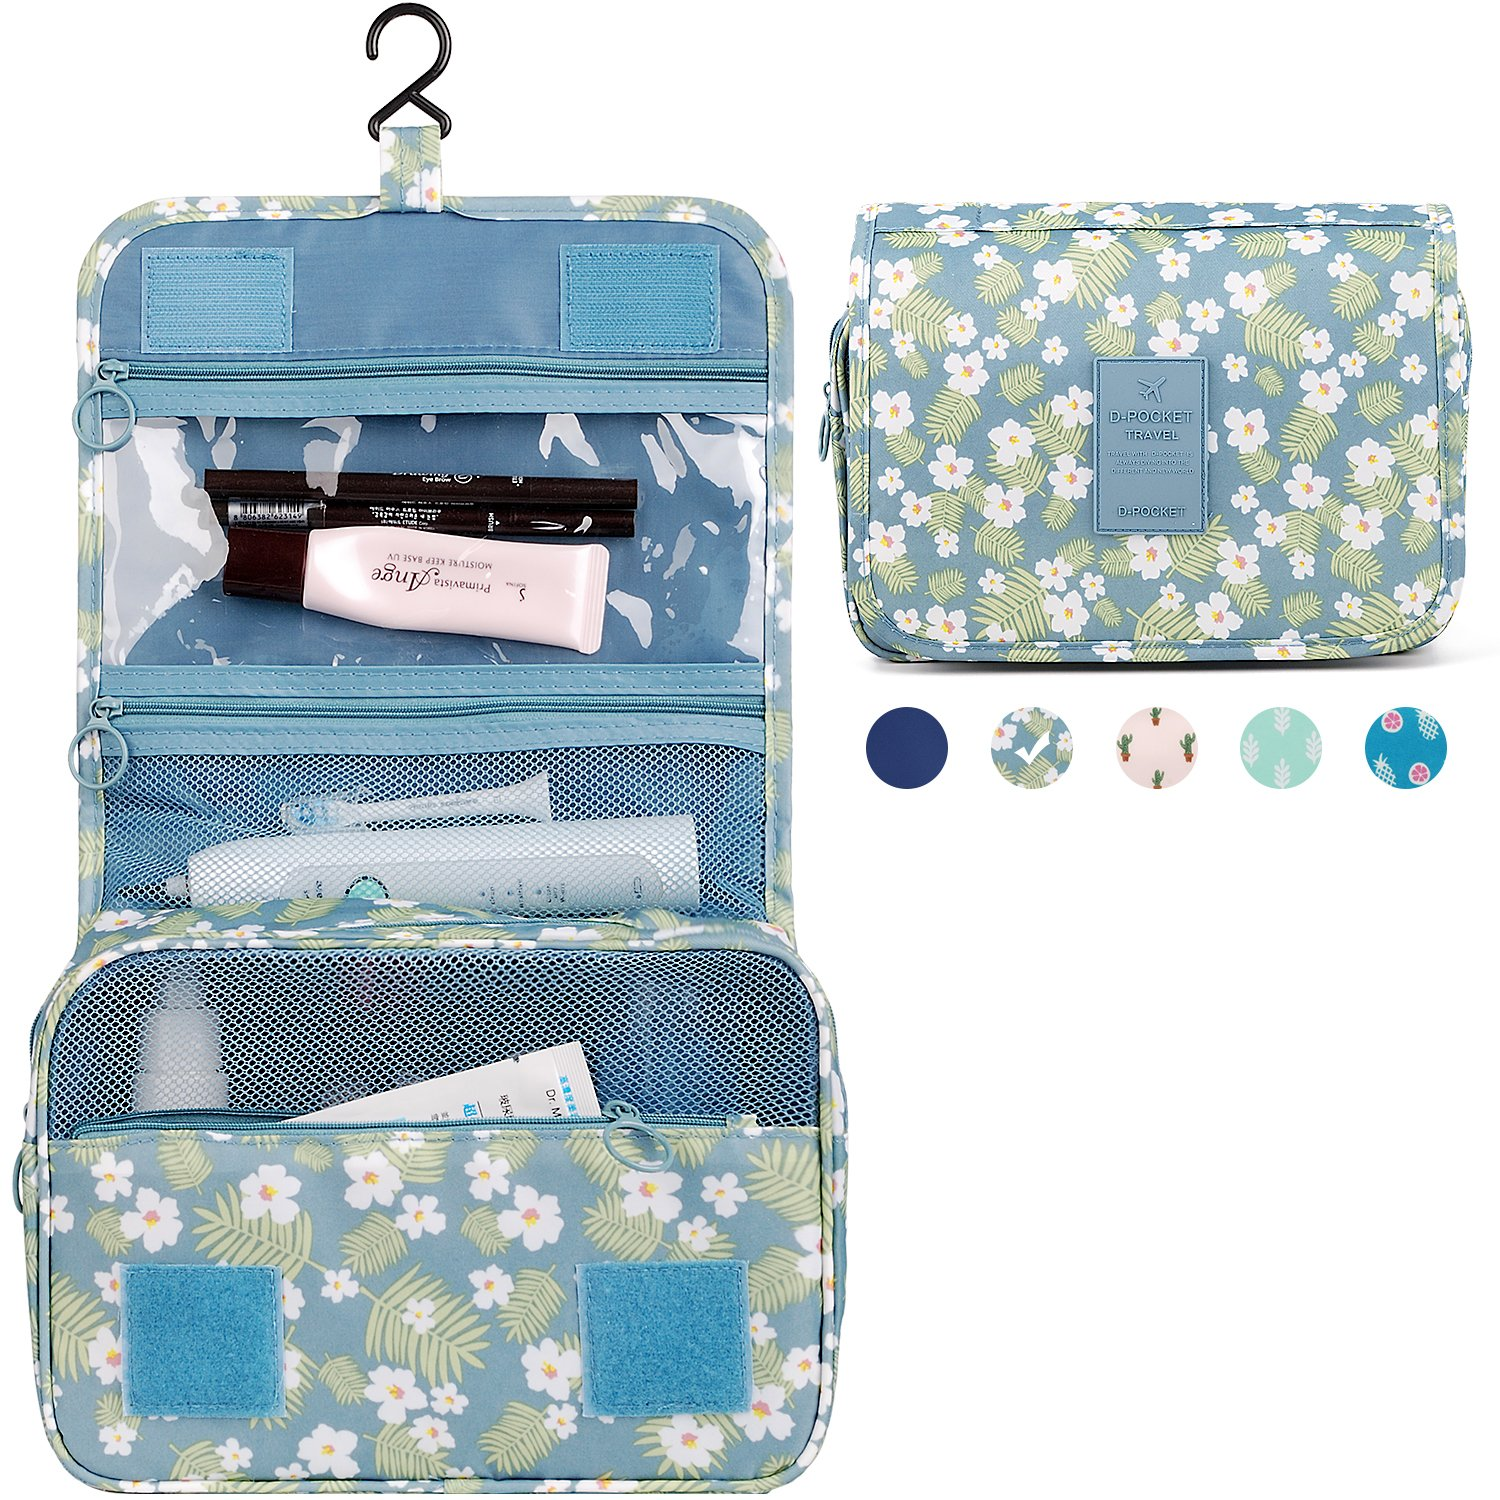 Waterproof Travel Hanging Toiletry Bag Cosmetic Make up Organizer for Women and Girls